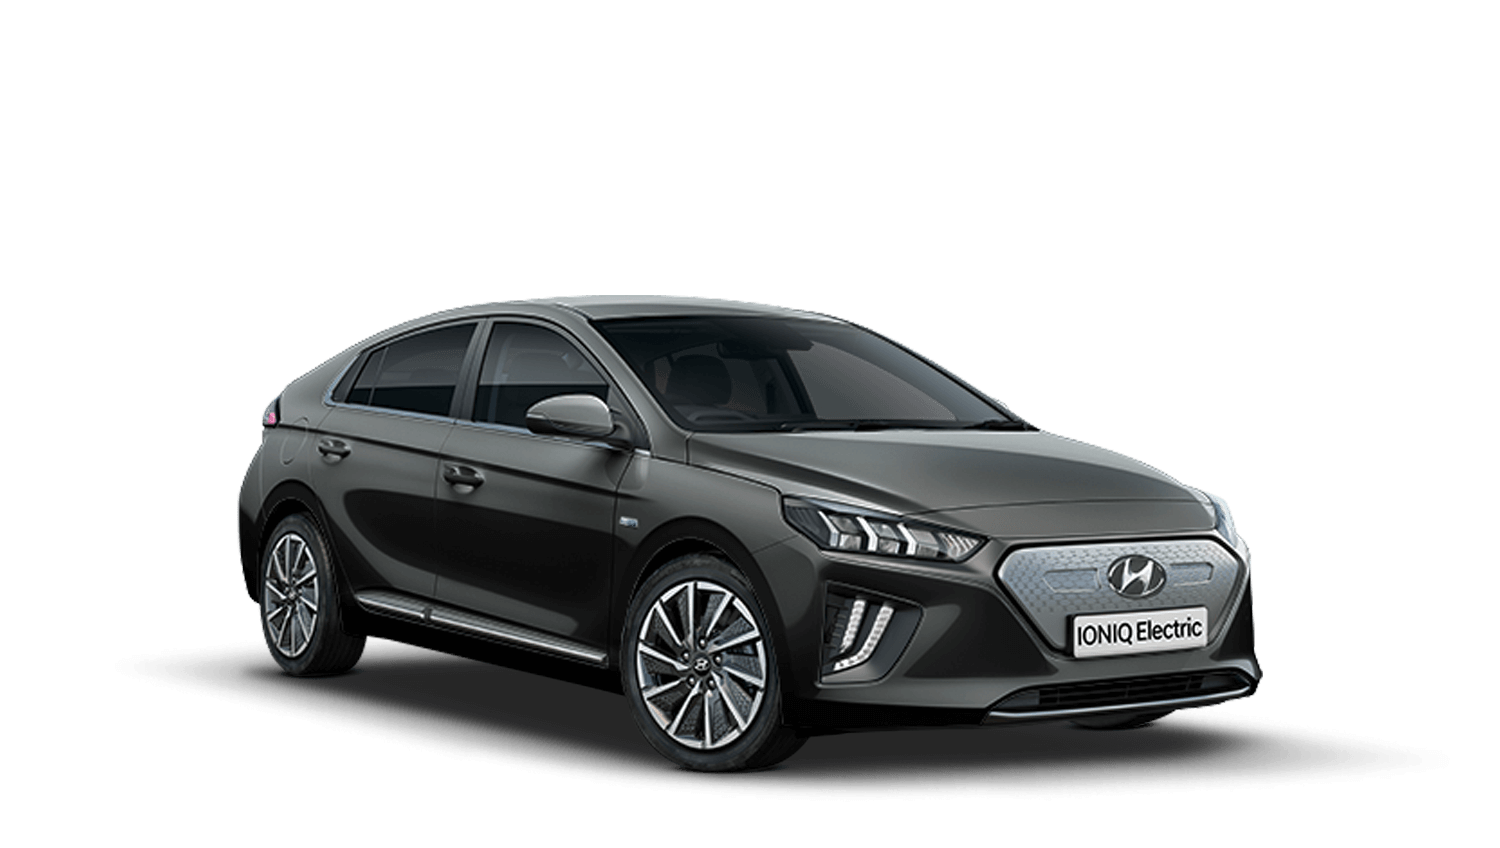 Cyber Grey Hyundai IONIQ Electric